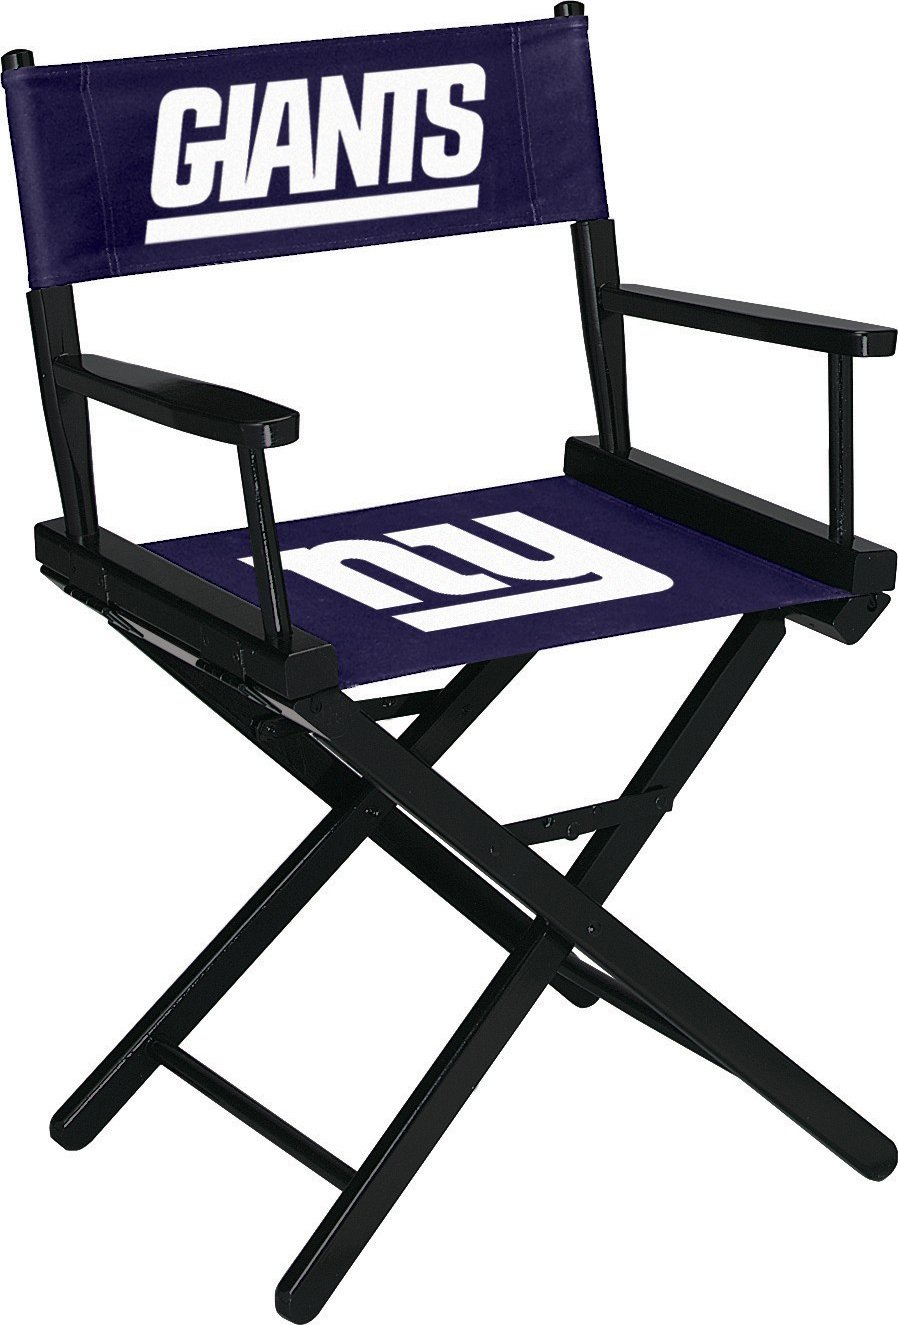 Imperial Officially Licensed NFL Merchandise: Directors Chair (Short, Table Height), New York Giants